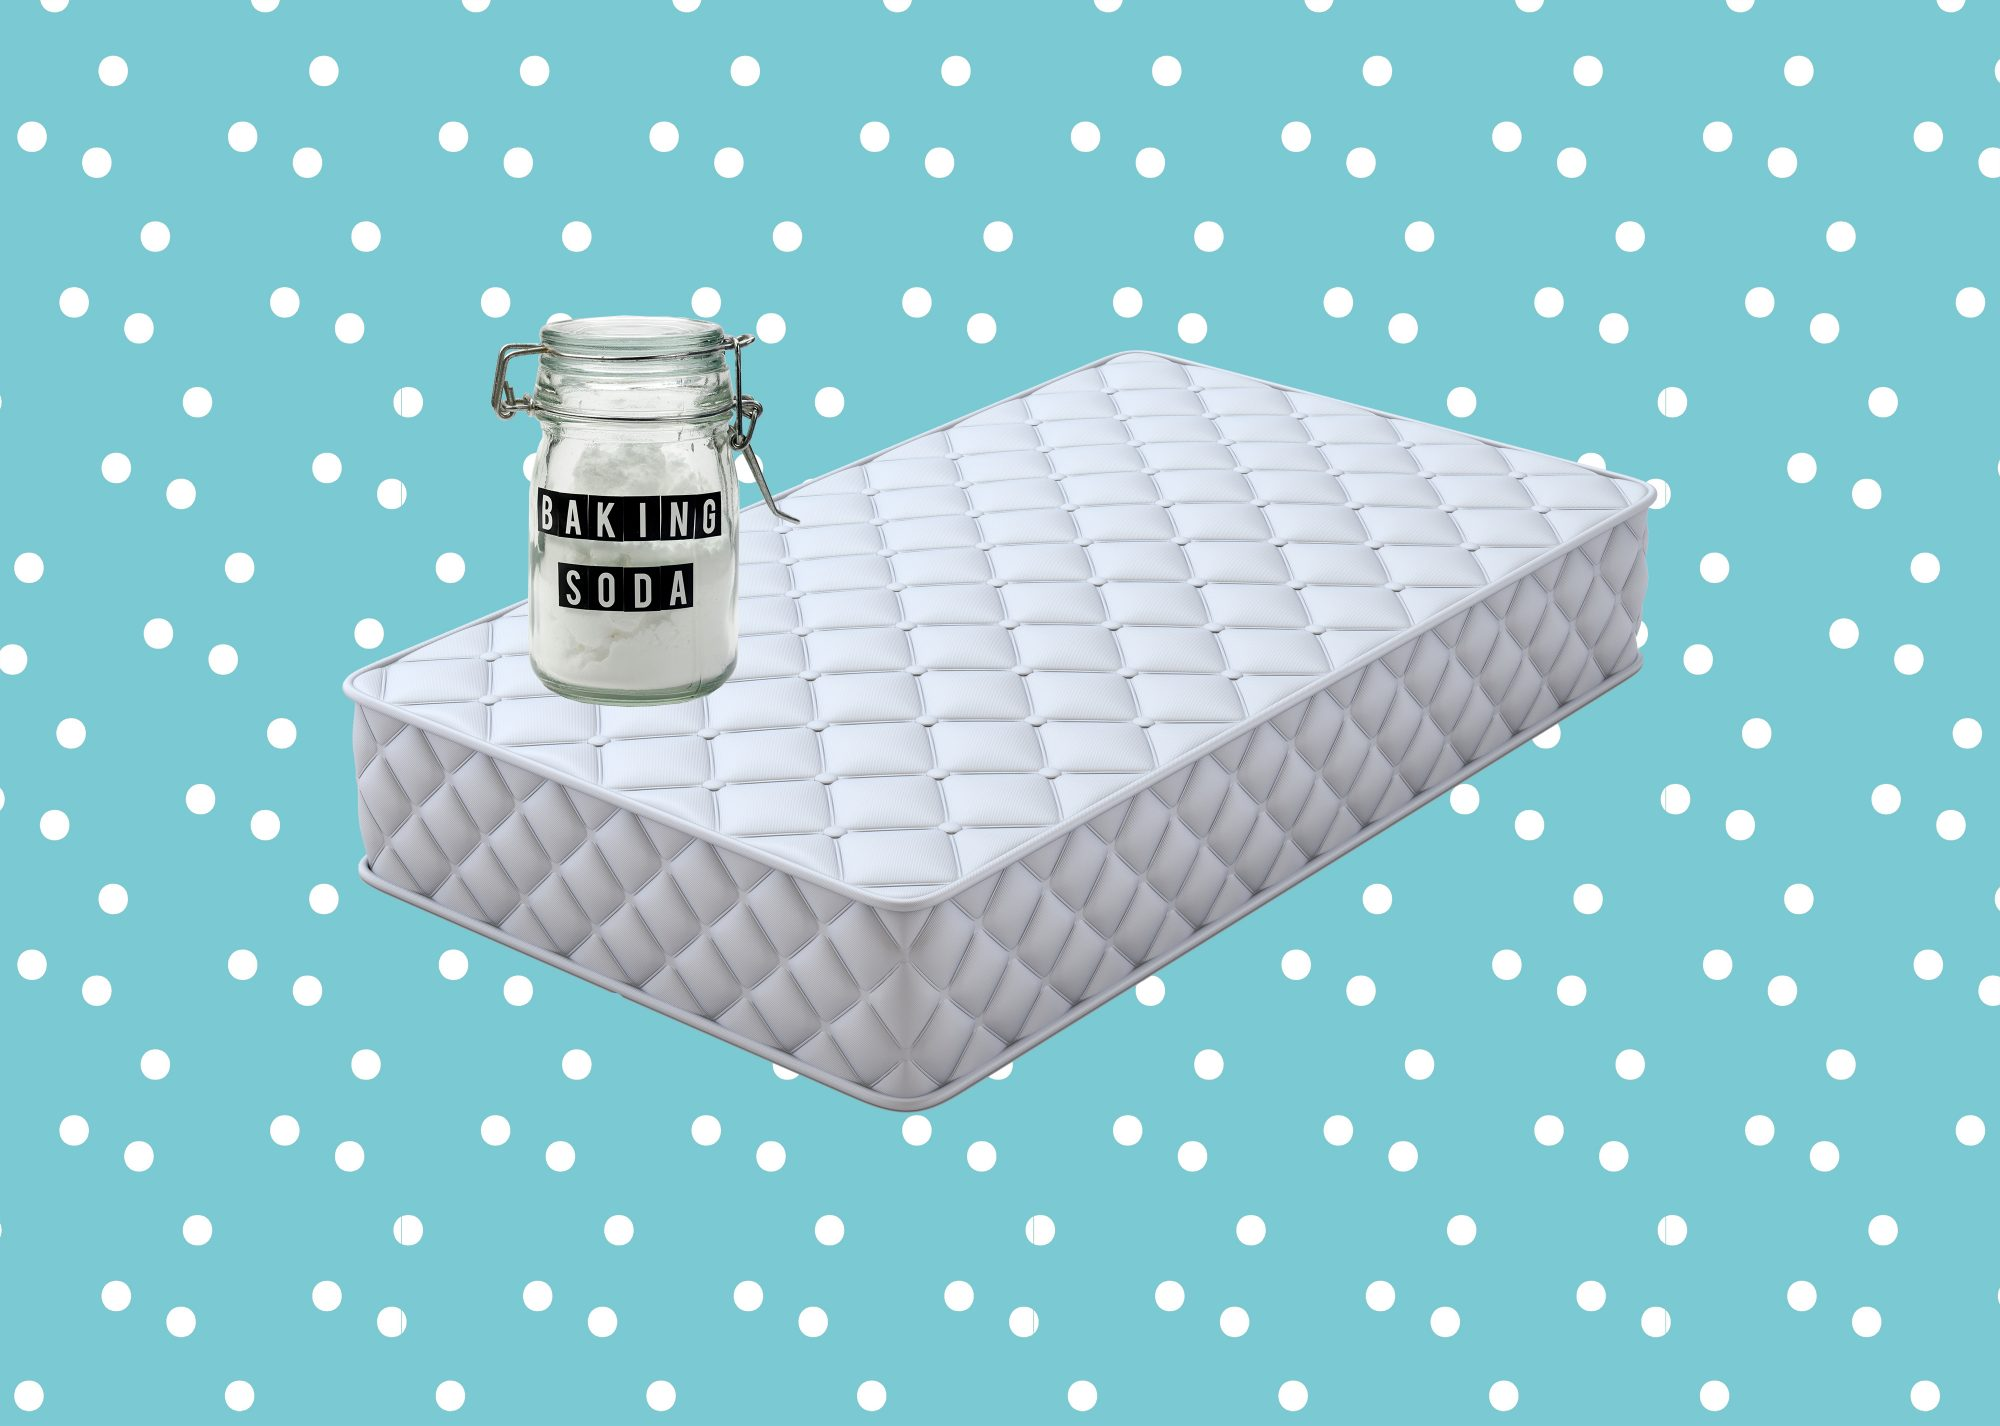 How to Clean Even the Grossest Stains Off Your Mattress—Without Harsh Chemicals